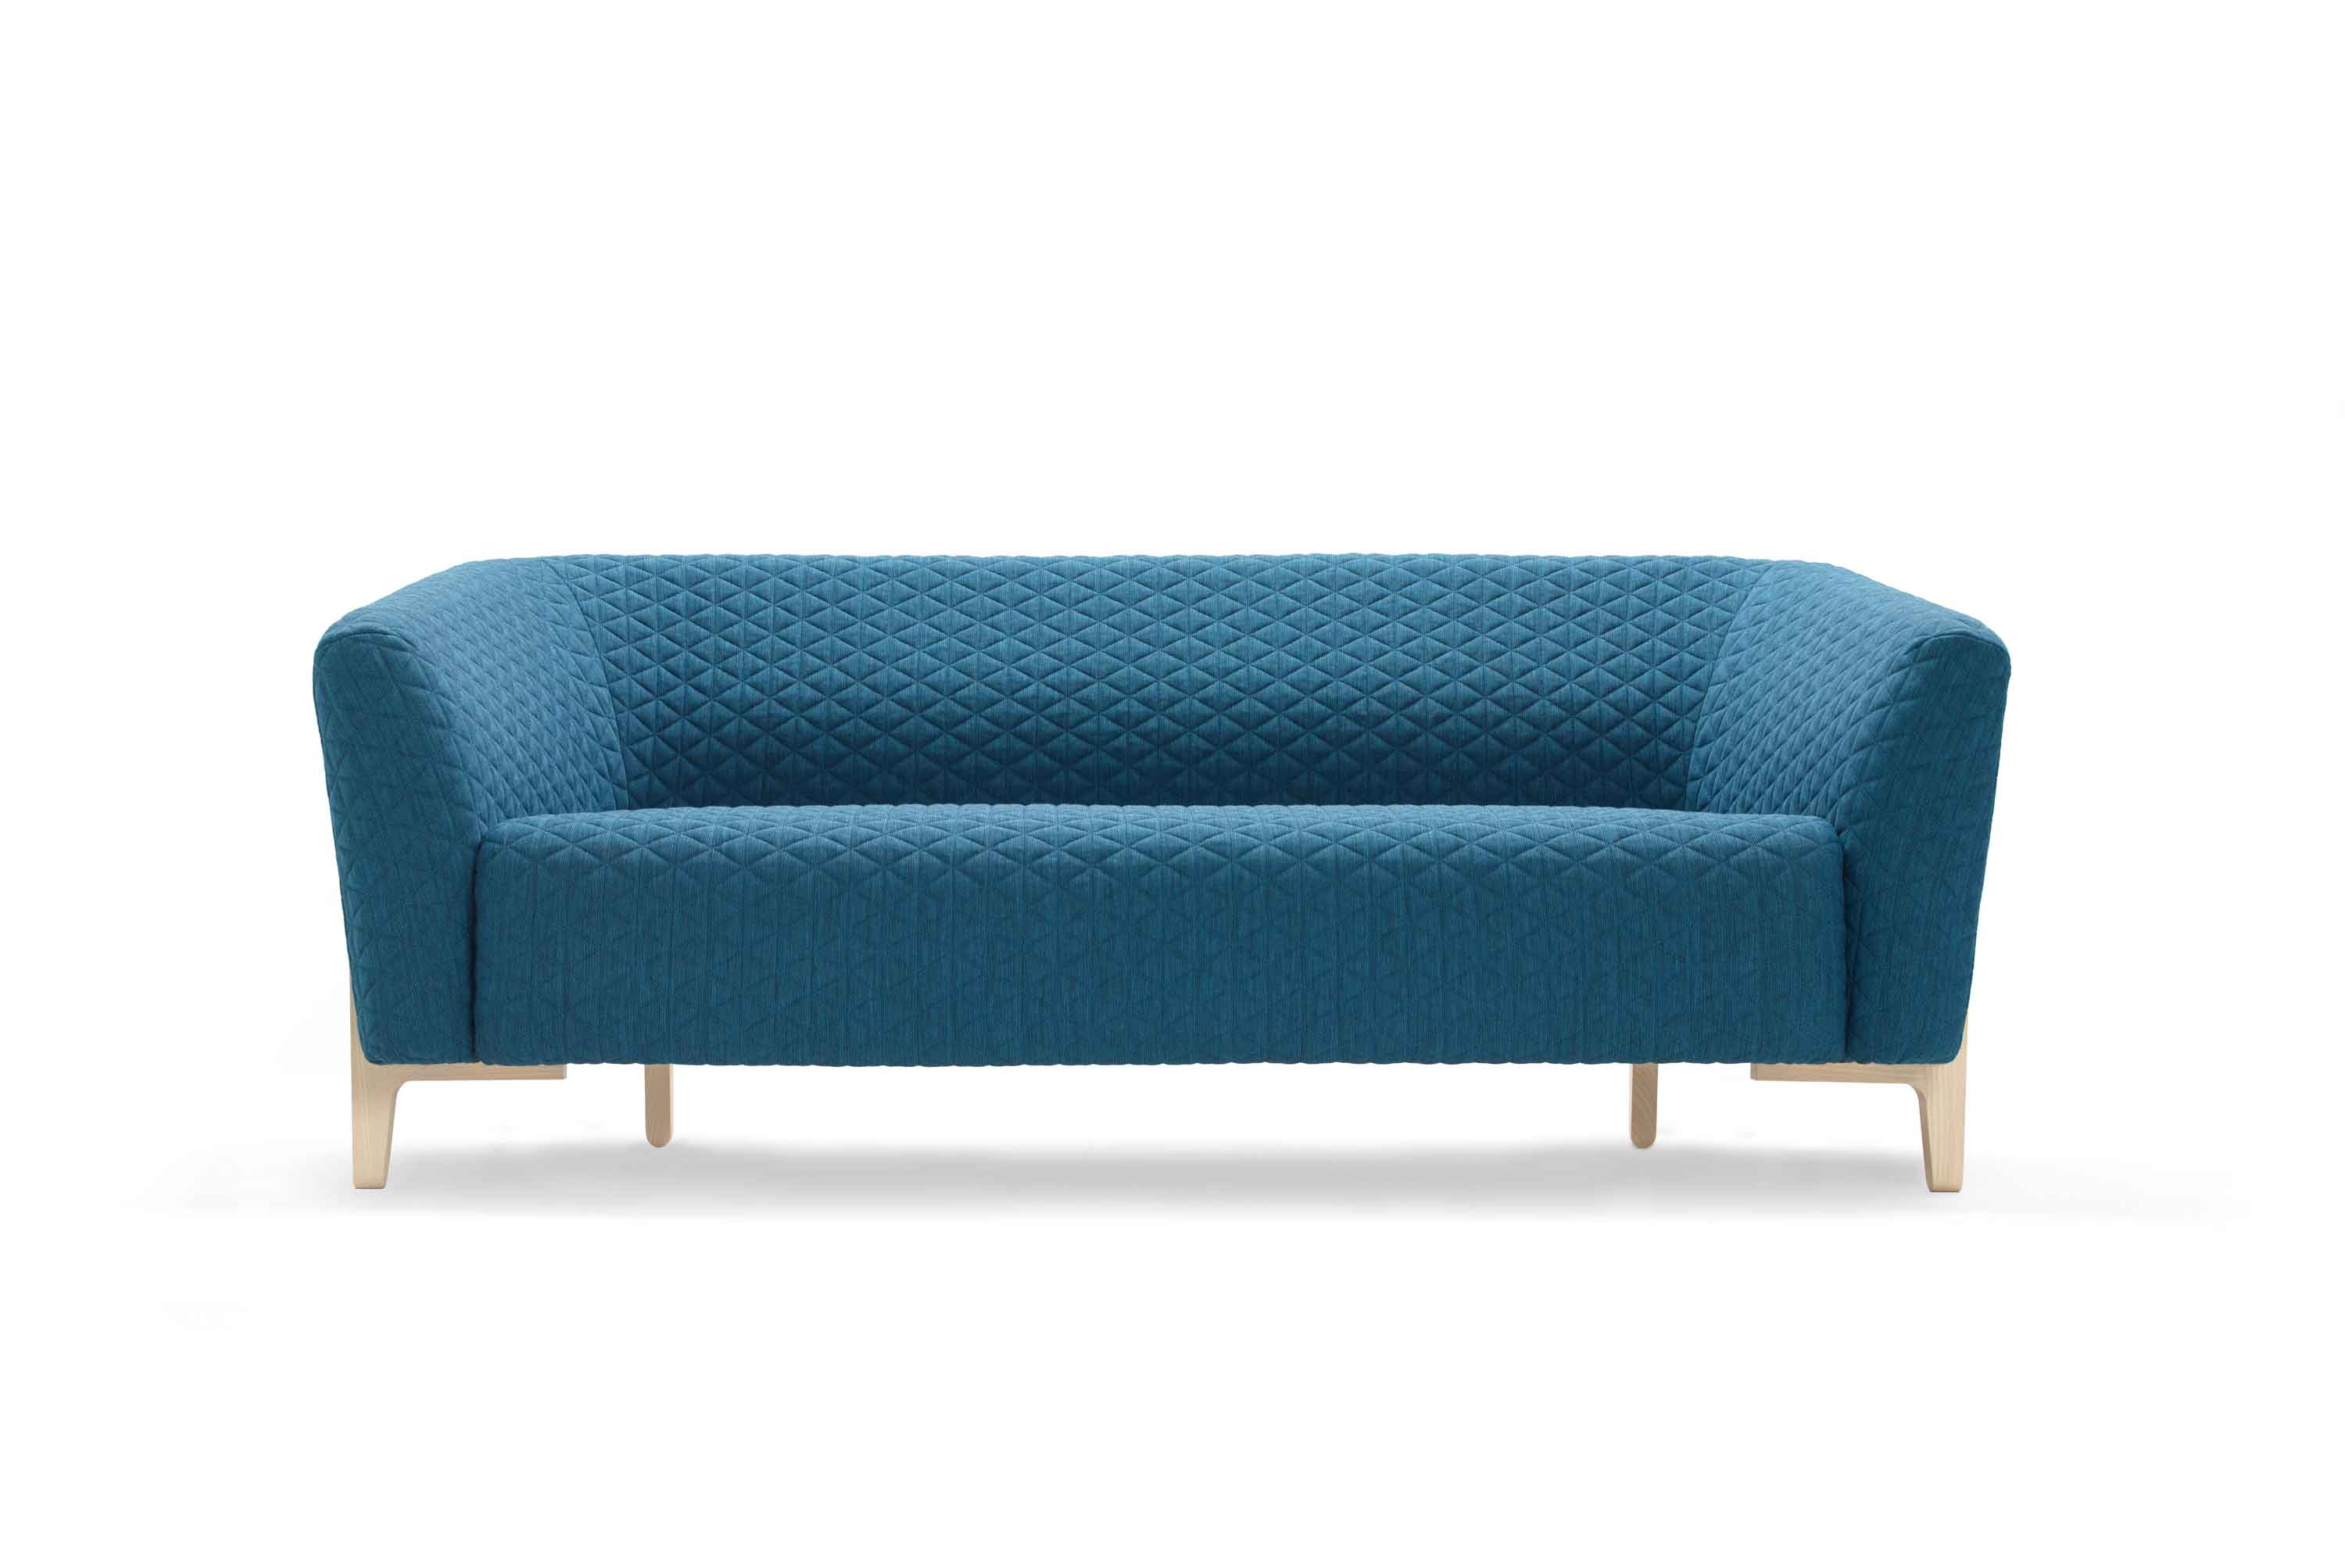 Young-Sofas-Michael-Young-offecct-6